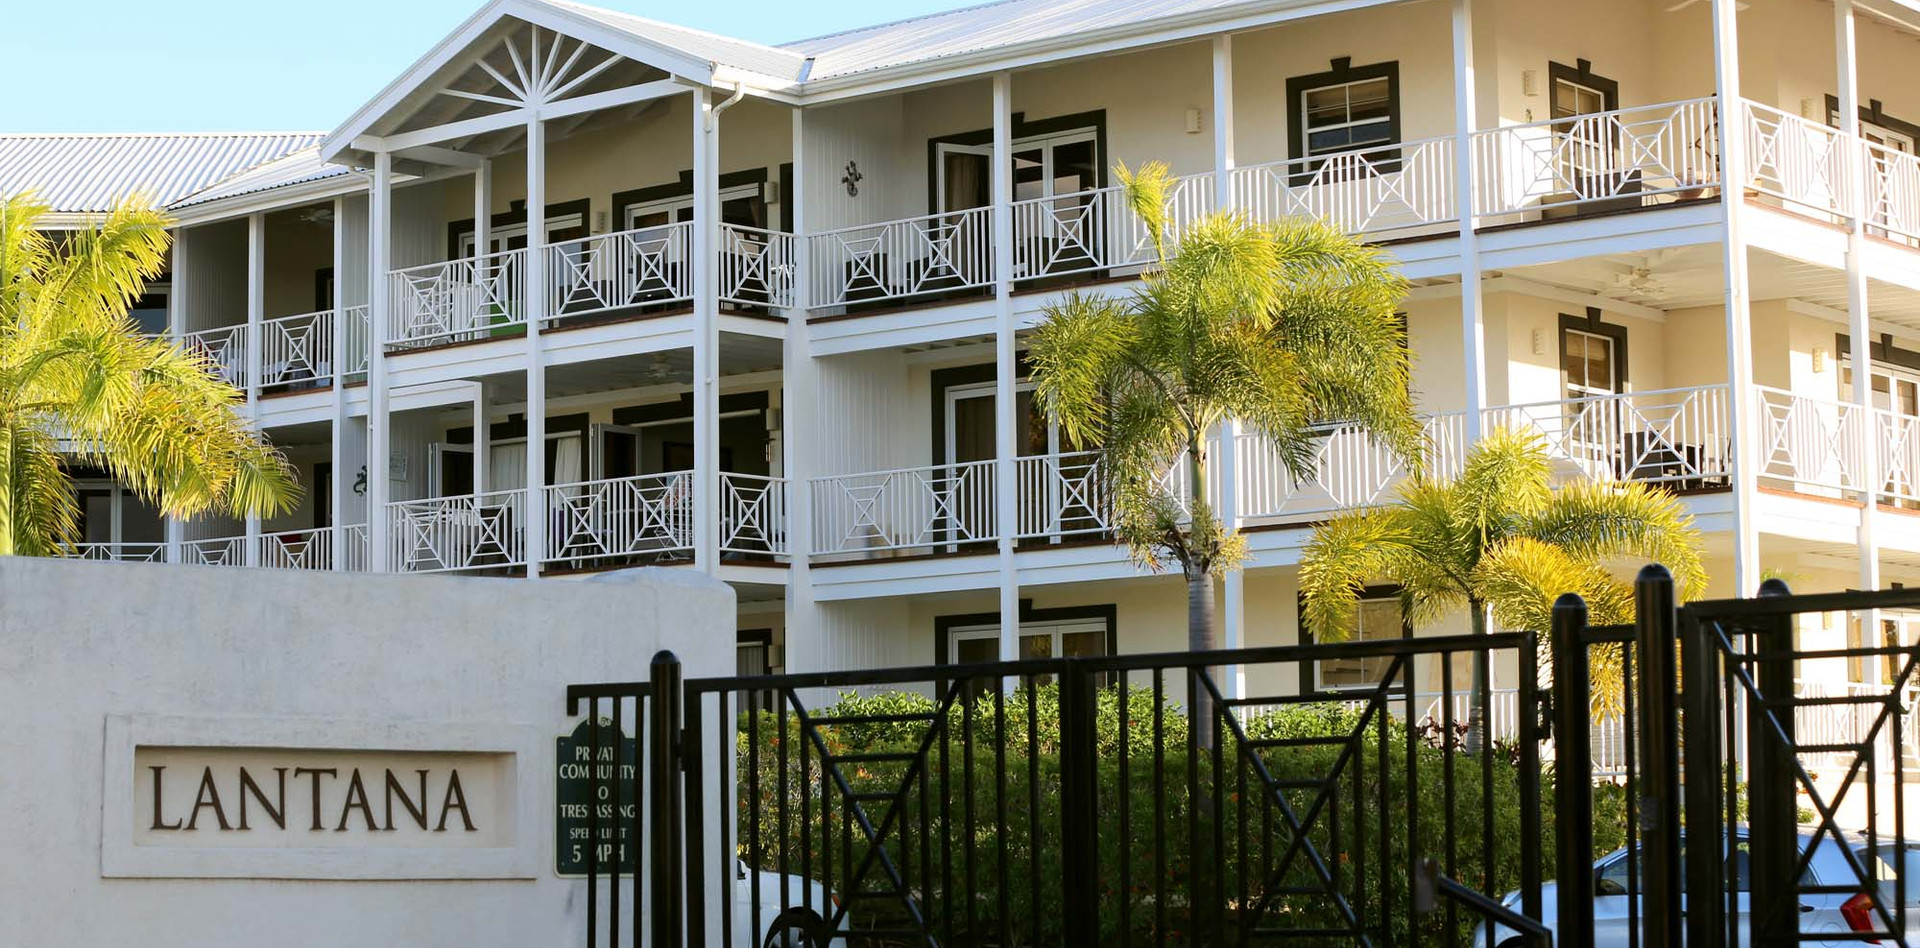 0724-lantana-barbados-vacation-rentals.j